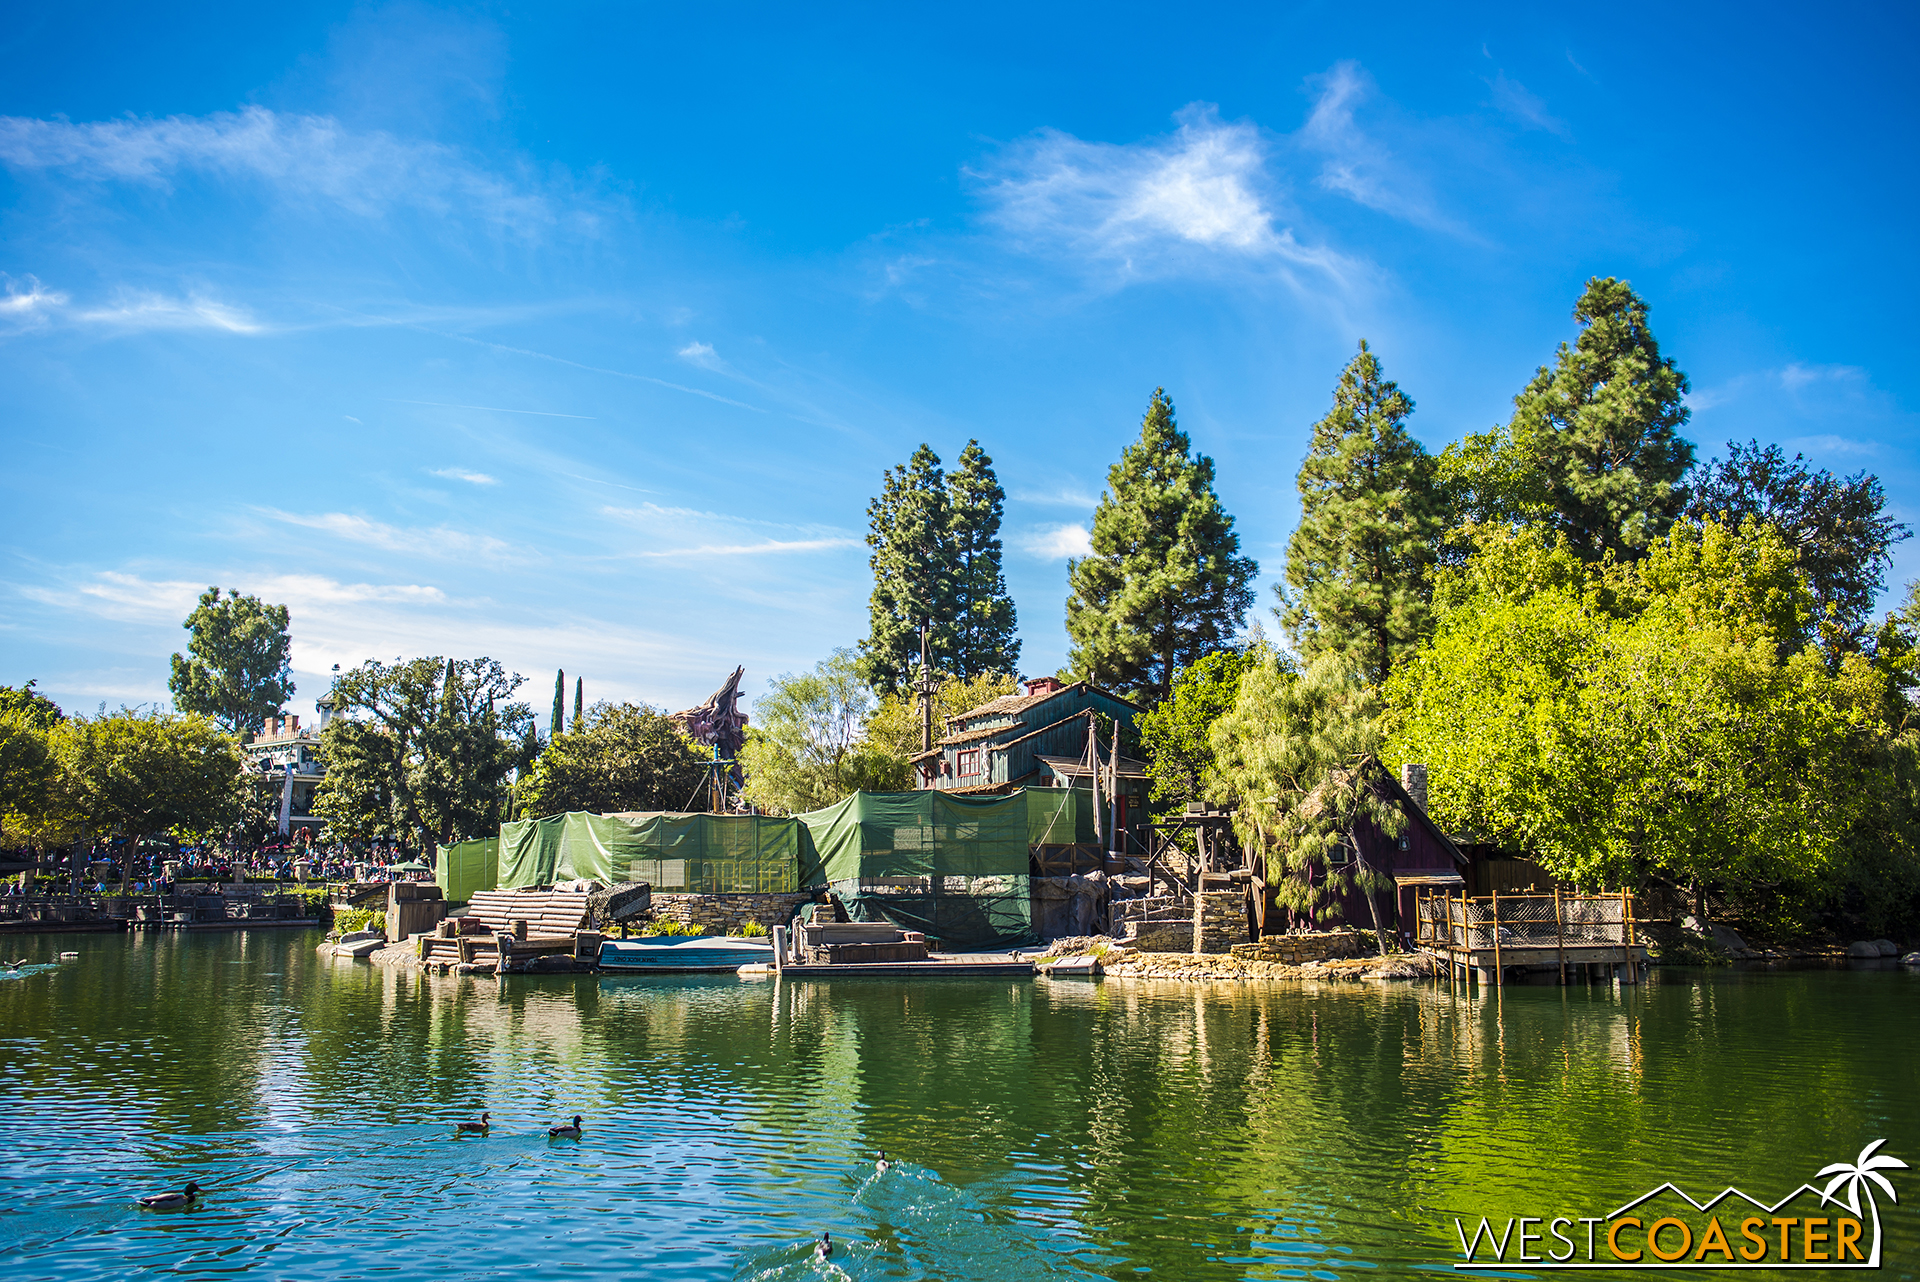 It's Tom Sawyer Island!